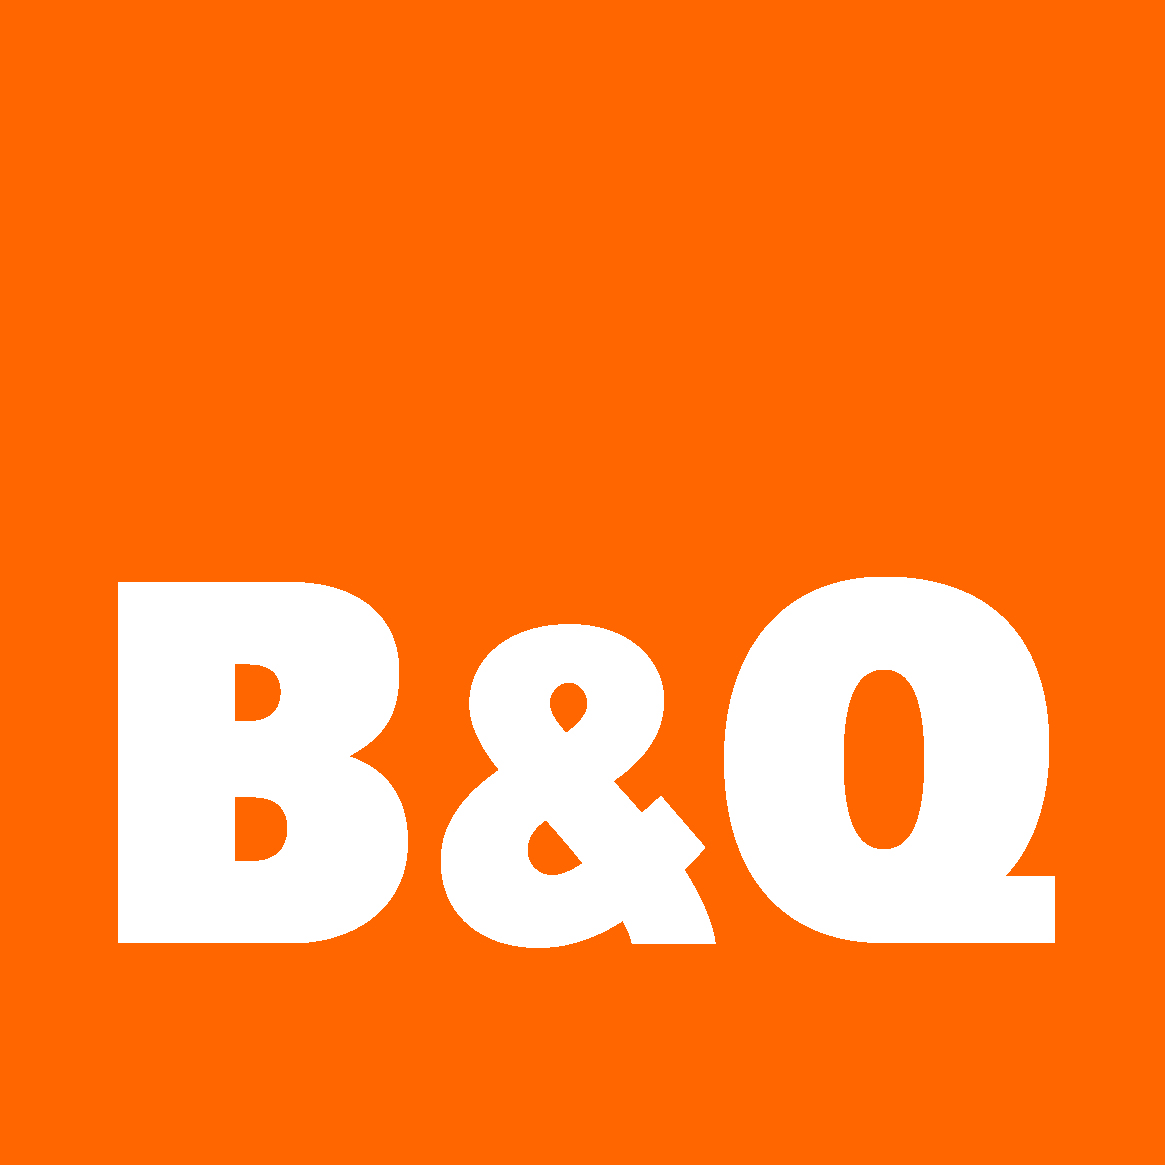 B&Q confirm the store is still planning to open in Oxford